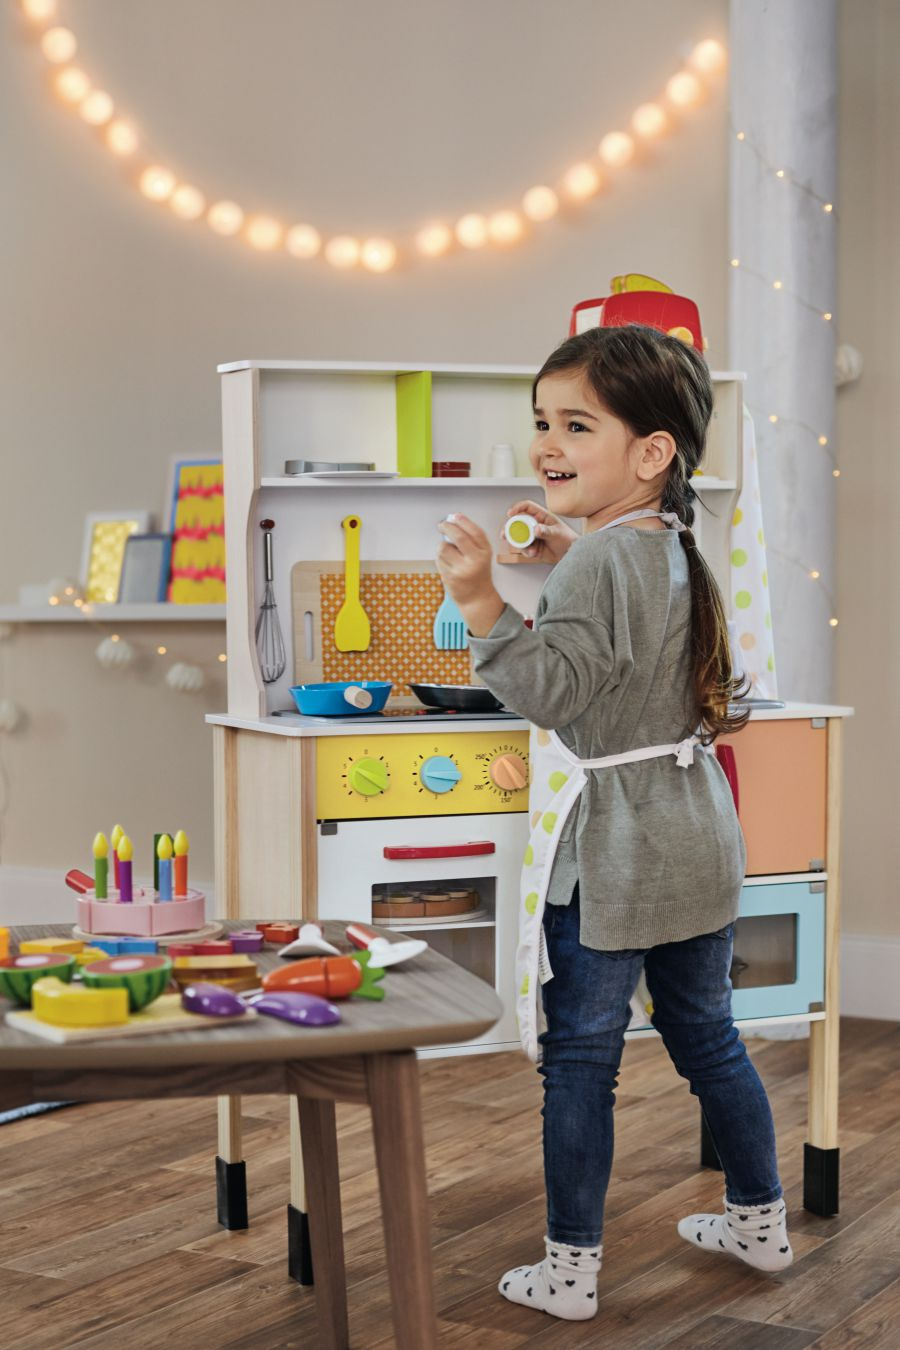 La collection de jouets en bois de chez lidl so workin 39 girls for Cuisine bois lidl